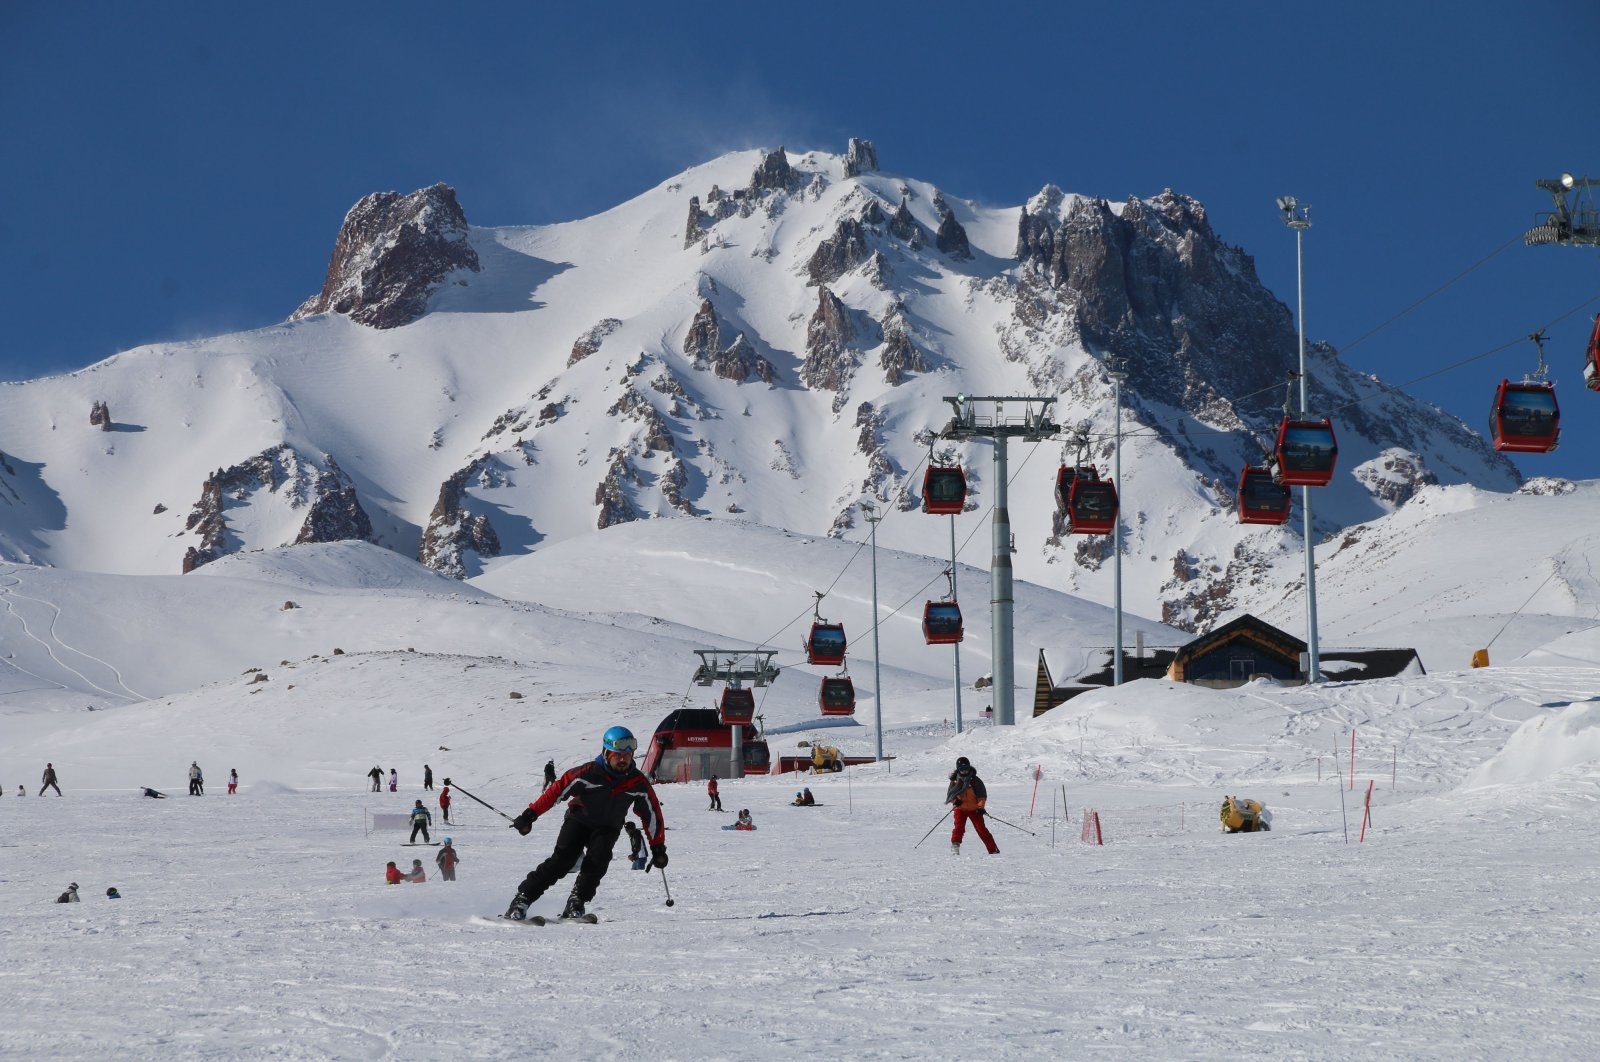 A view from the ski center at Erciyes Mountain, Kayseri, central Turkey, Feb. 12, 2018. (Sabah File Photo)